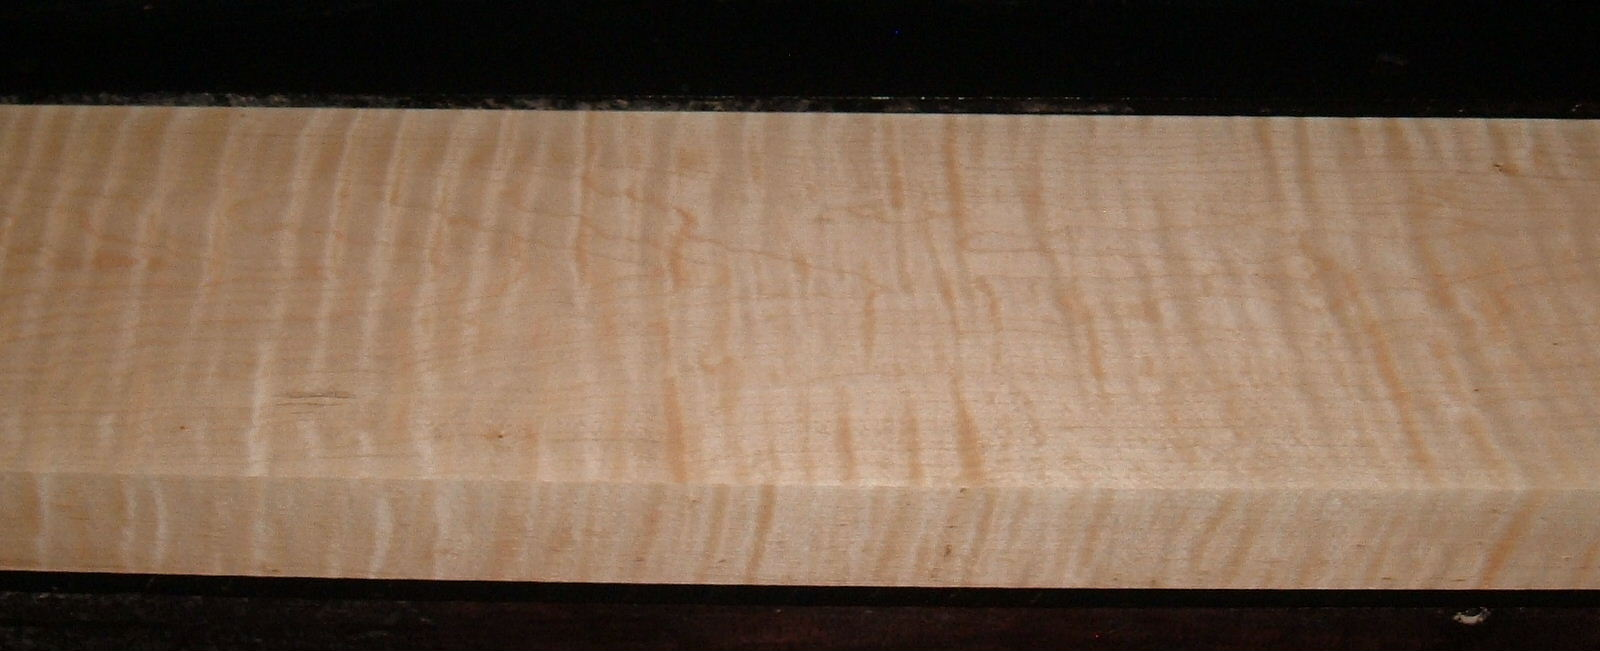 M2003-239, +1-3/4x6-7/8x52, Figure Curly Tiger Maple